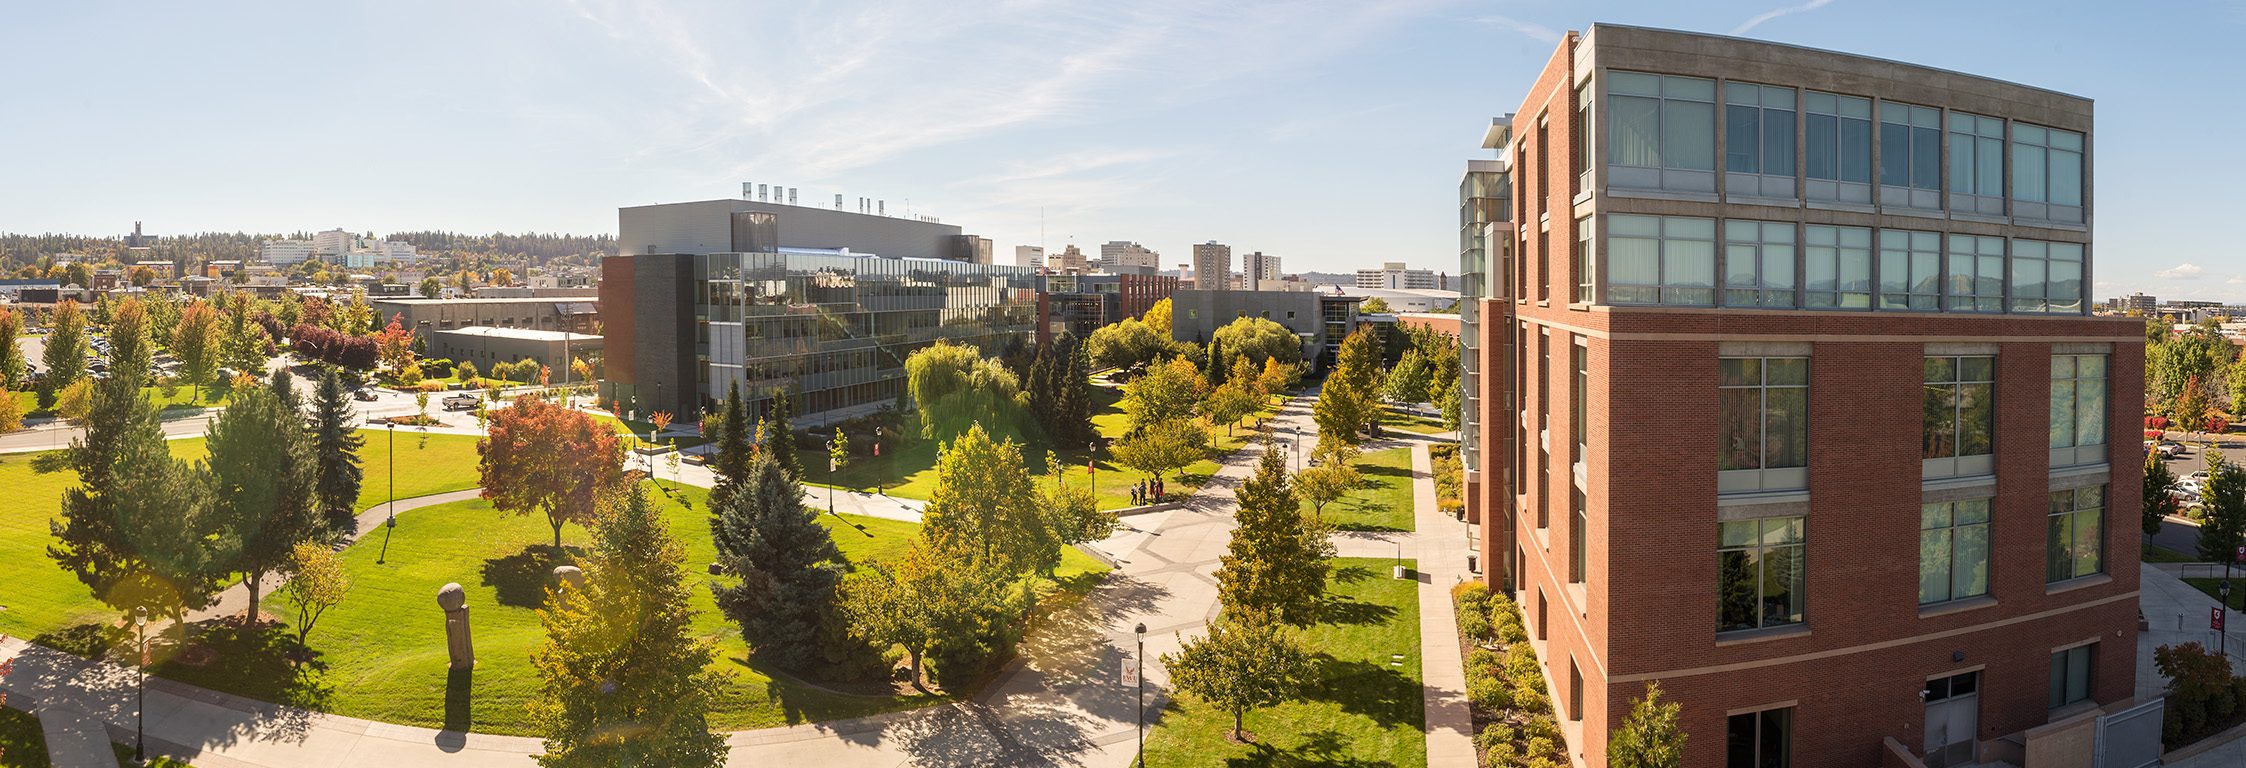 View of buildings at WSU Spokane campus.